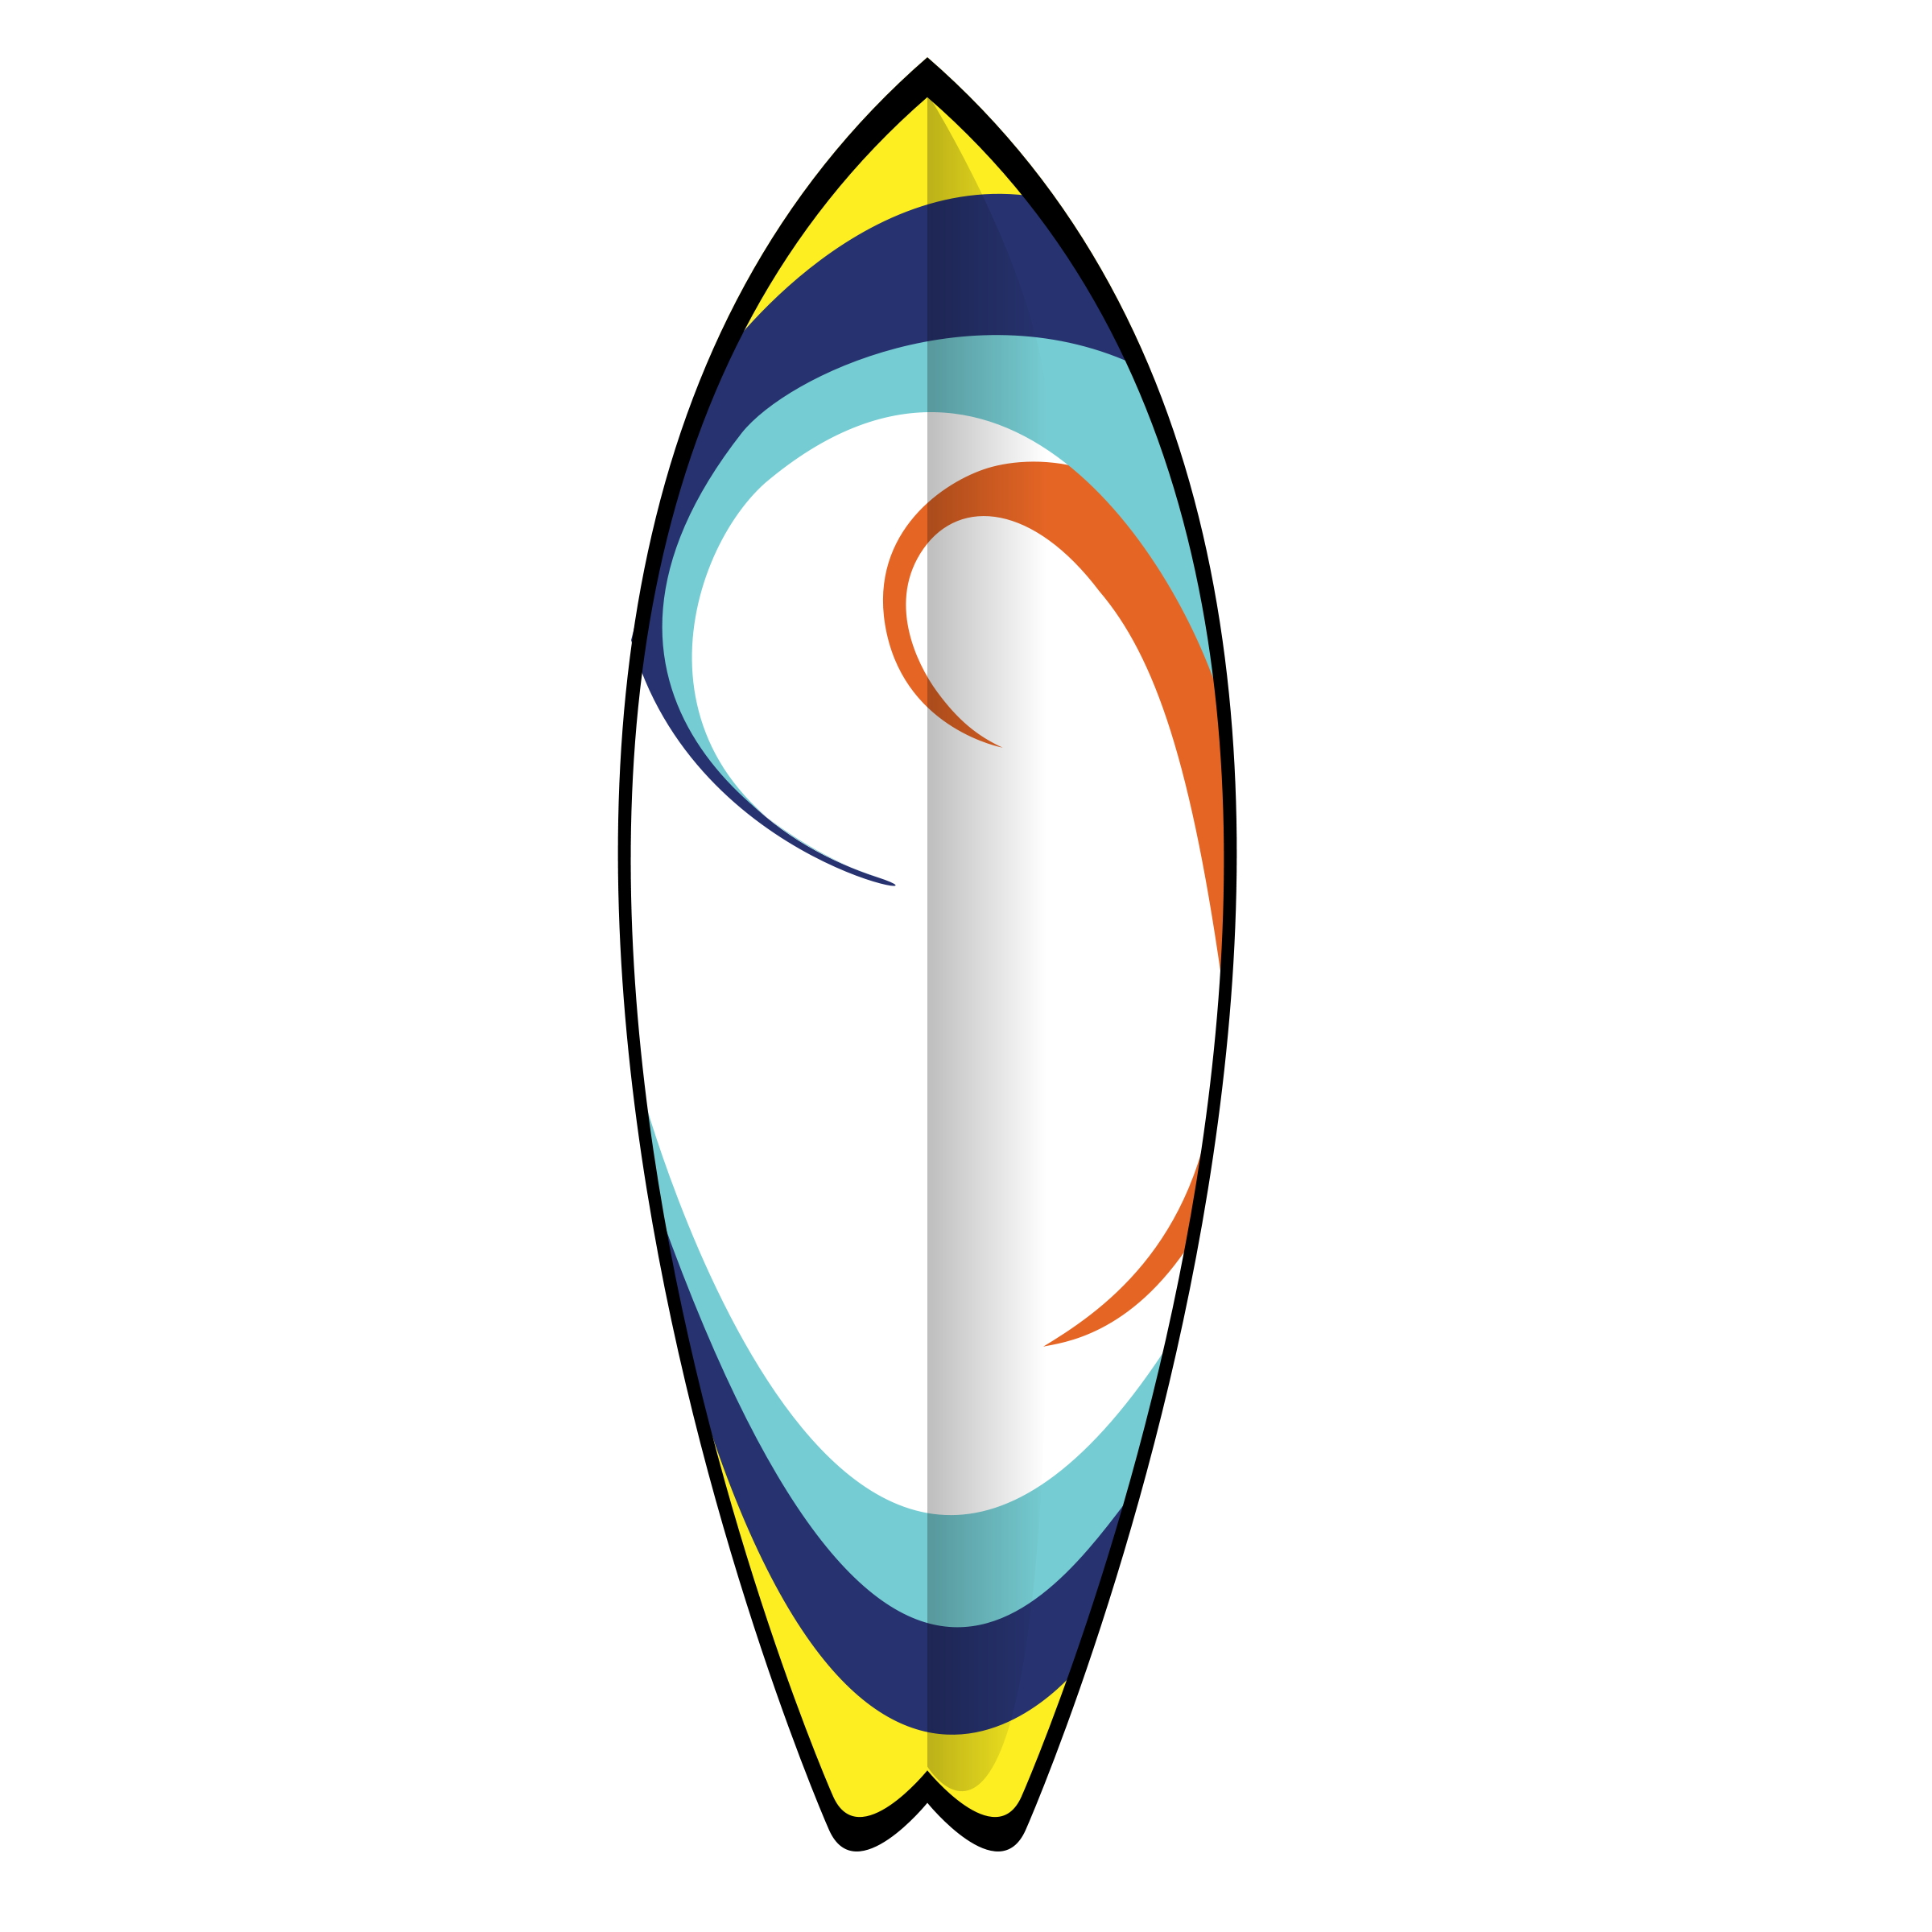 surfboard clip art free clipart panda free clipart images rh clipartpanda com surfboard clipart transparent surfboard clipart gif